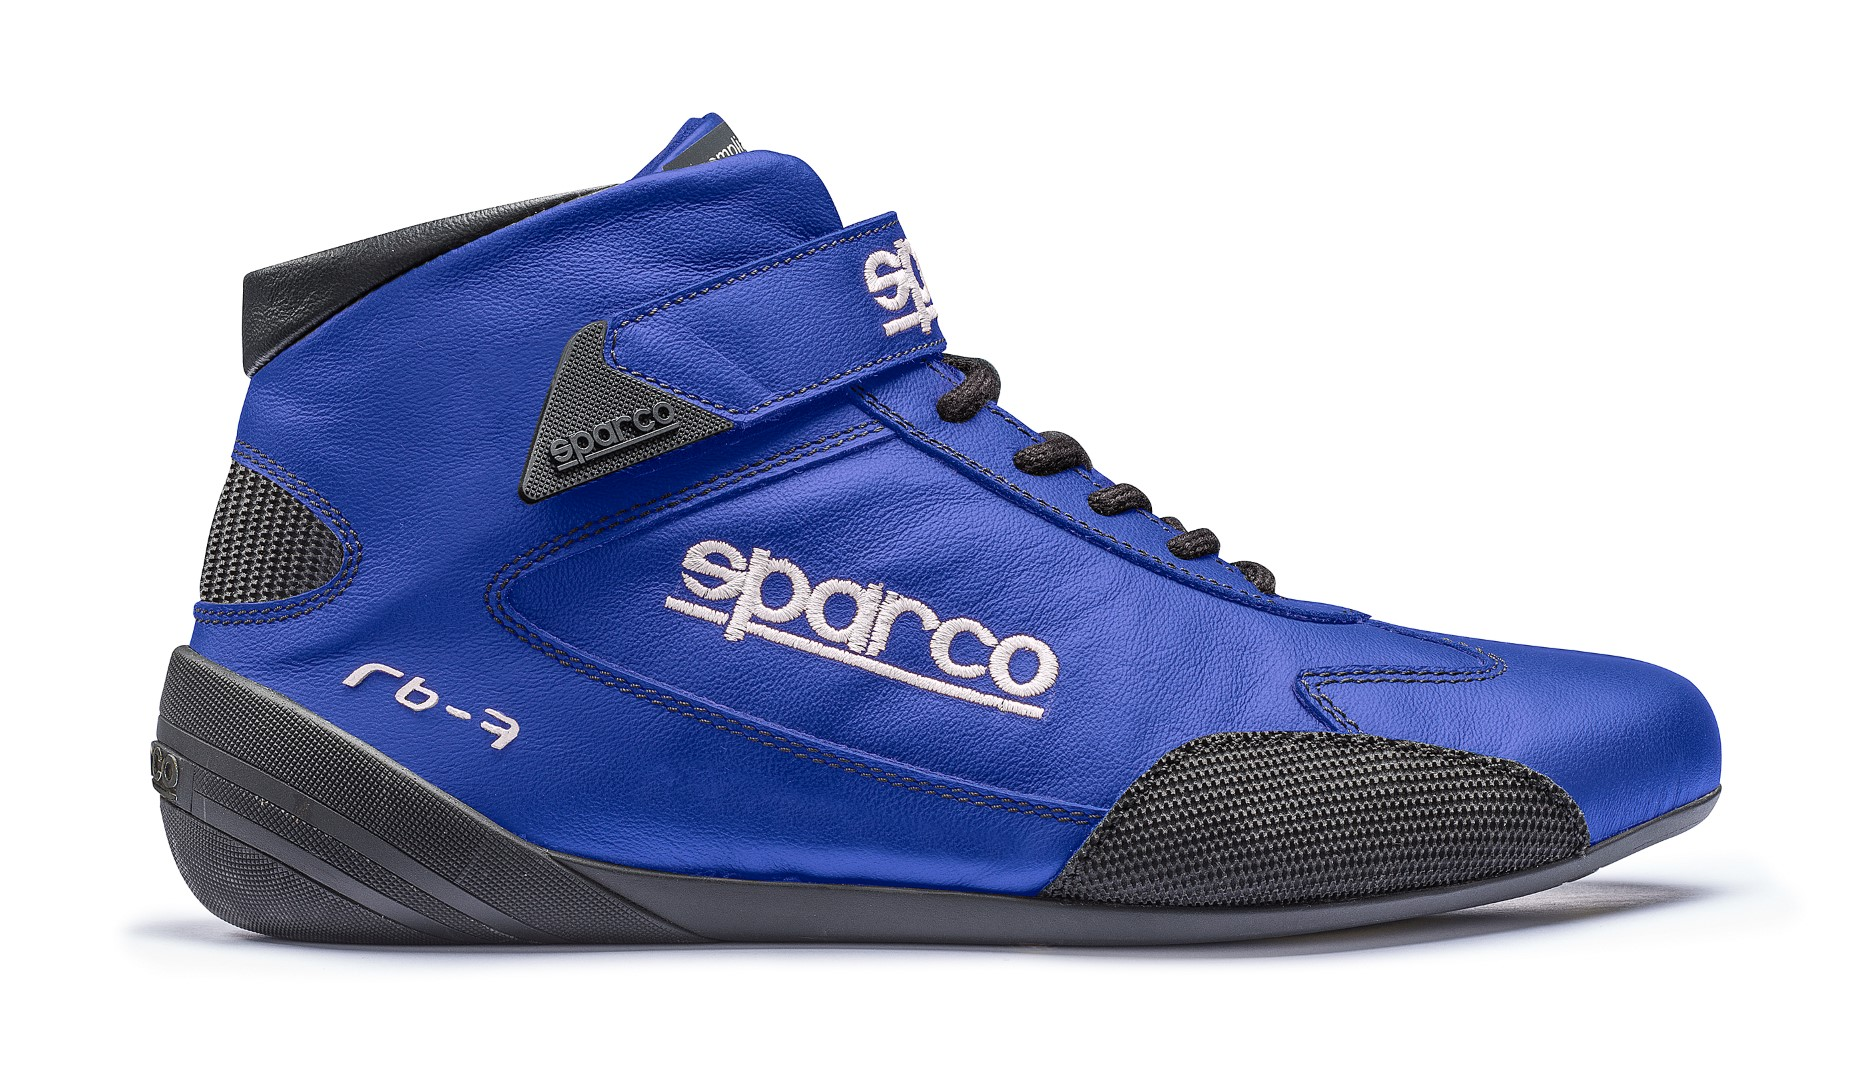 Sparco Blue Cross RB-7 Driving Shoes EU 40| US 6 - 00122440AZ